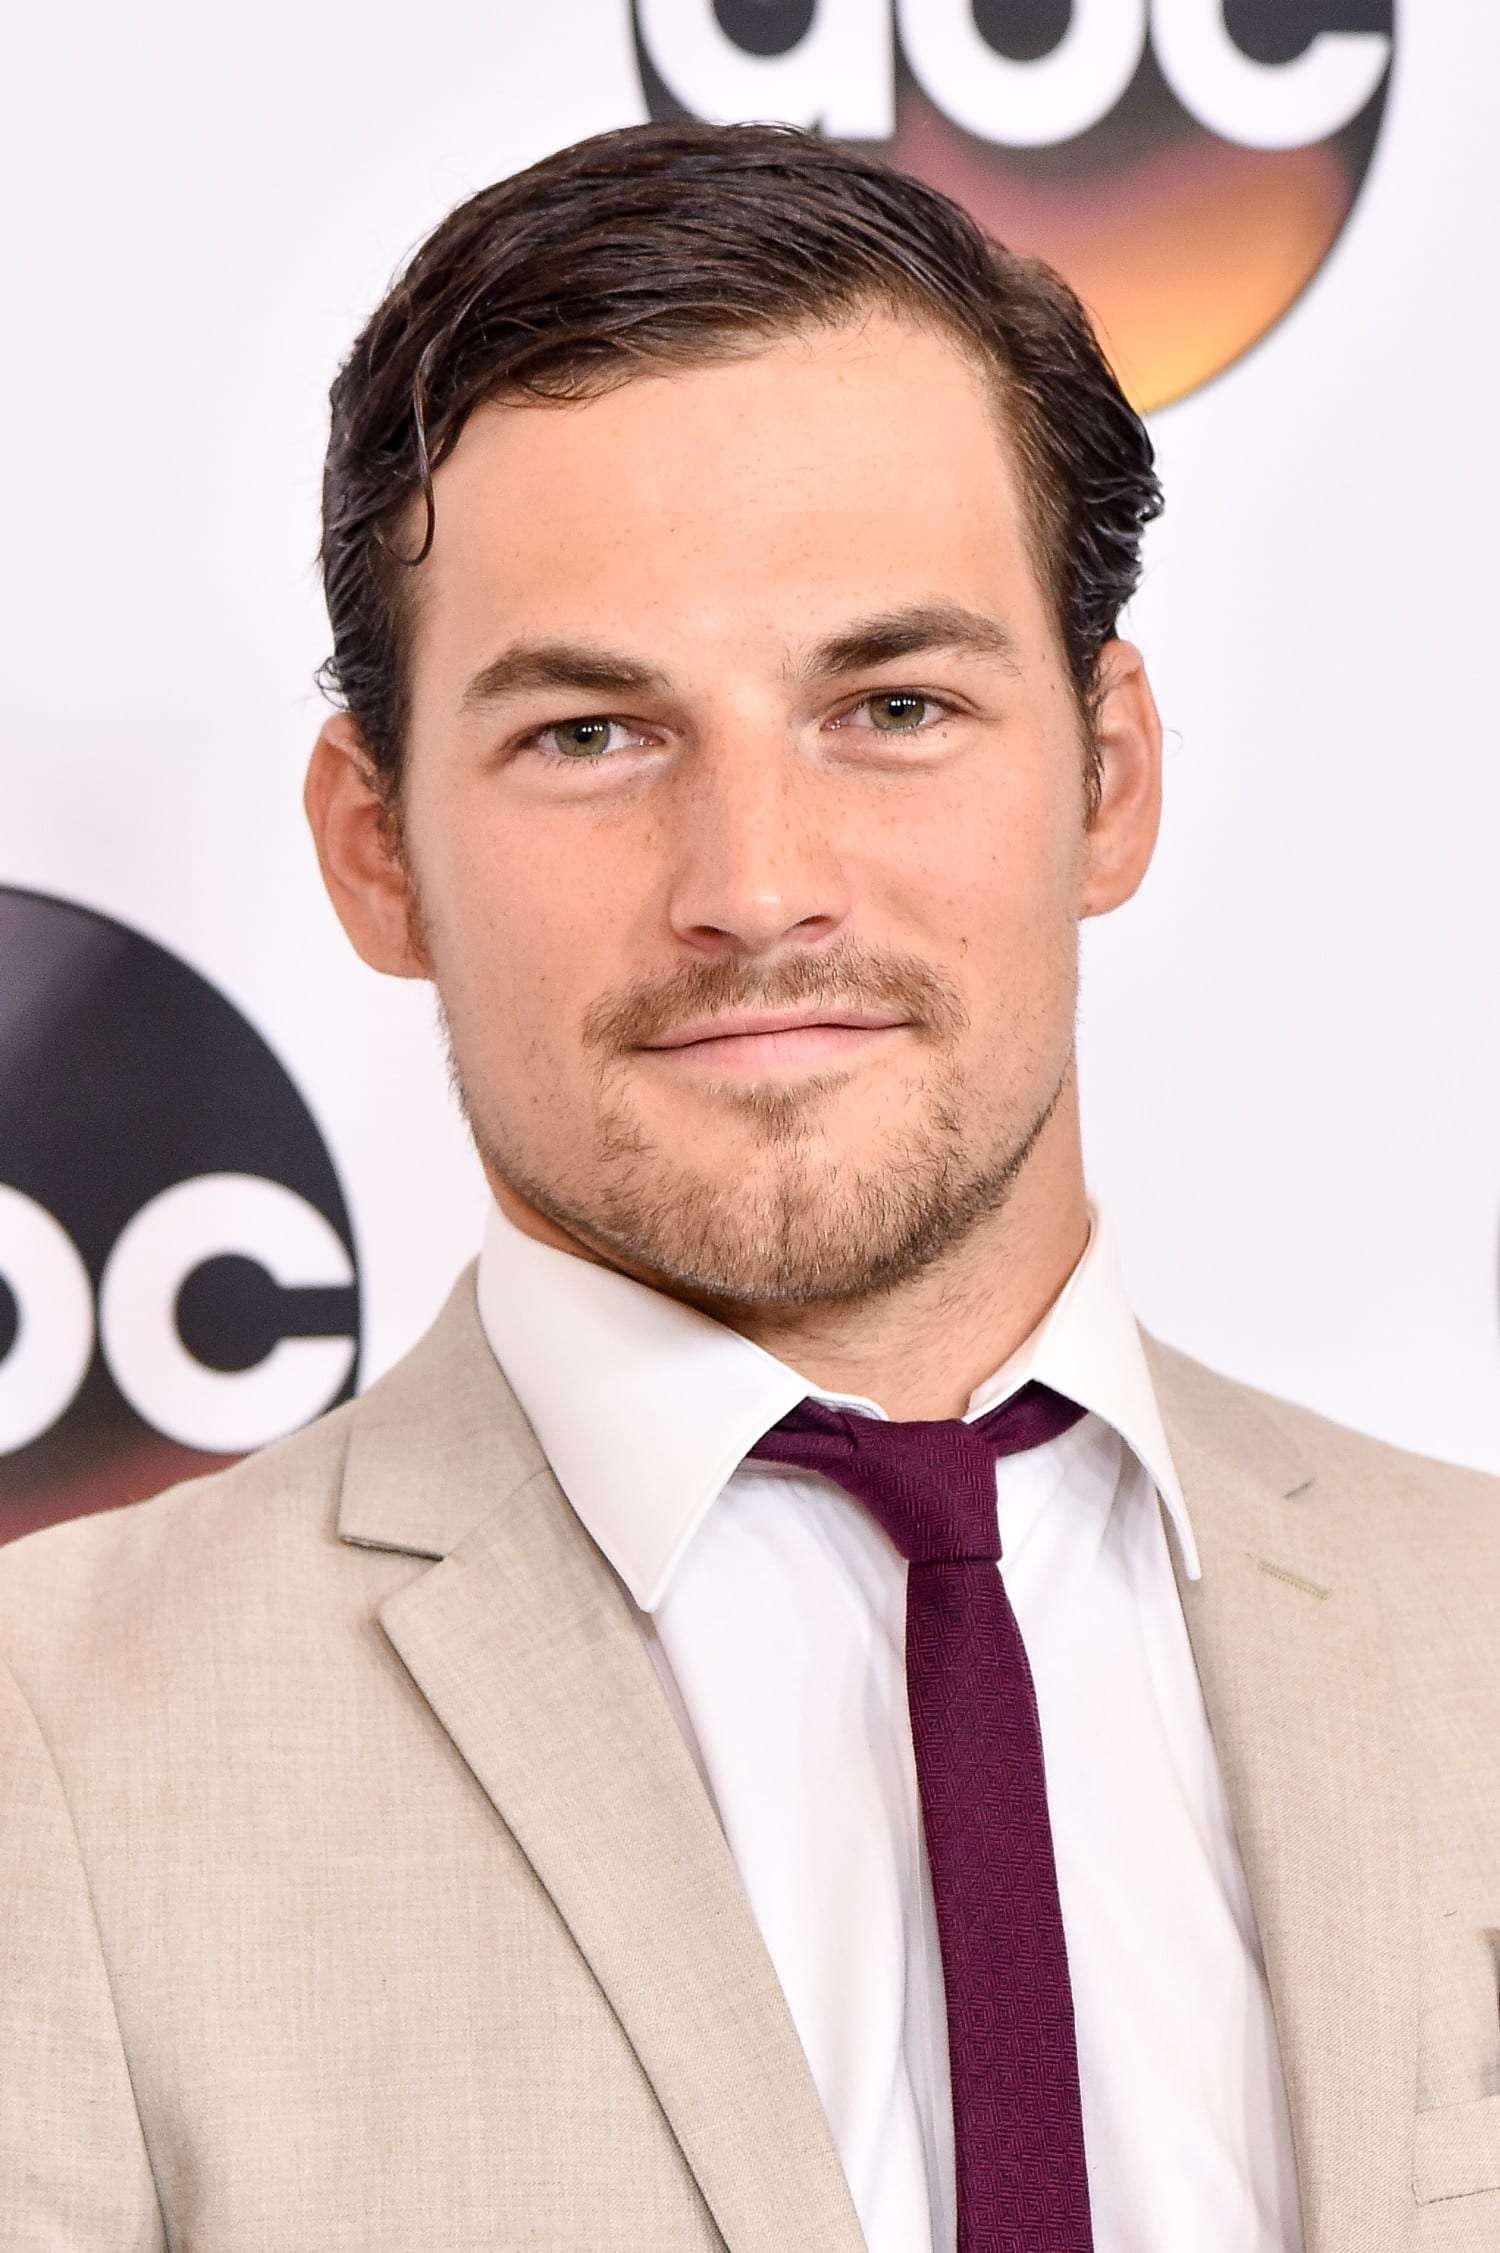 Giacomo Gianniotti photo